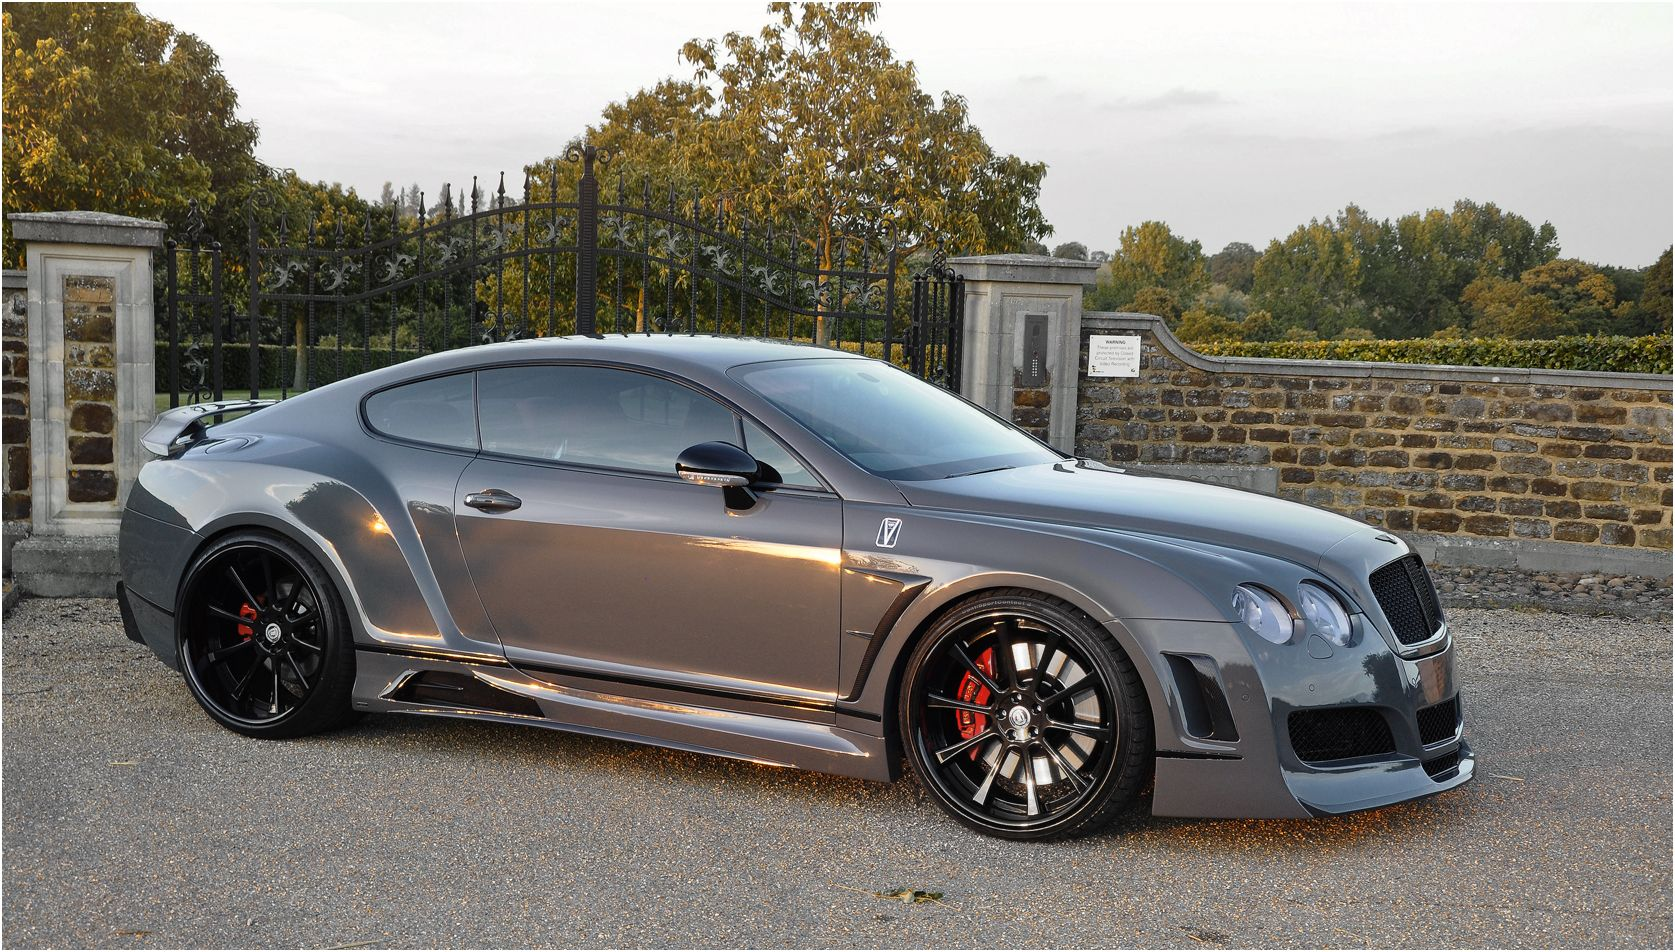 Custom Bentley Coupe Gt Quot Premier 4509 Wide Body Kit Quot Vad